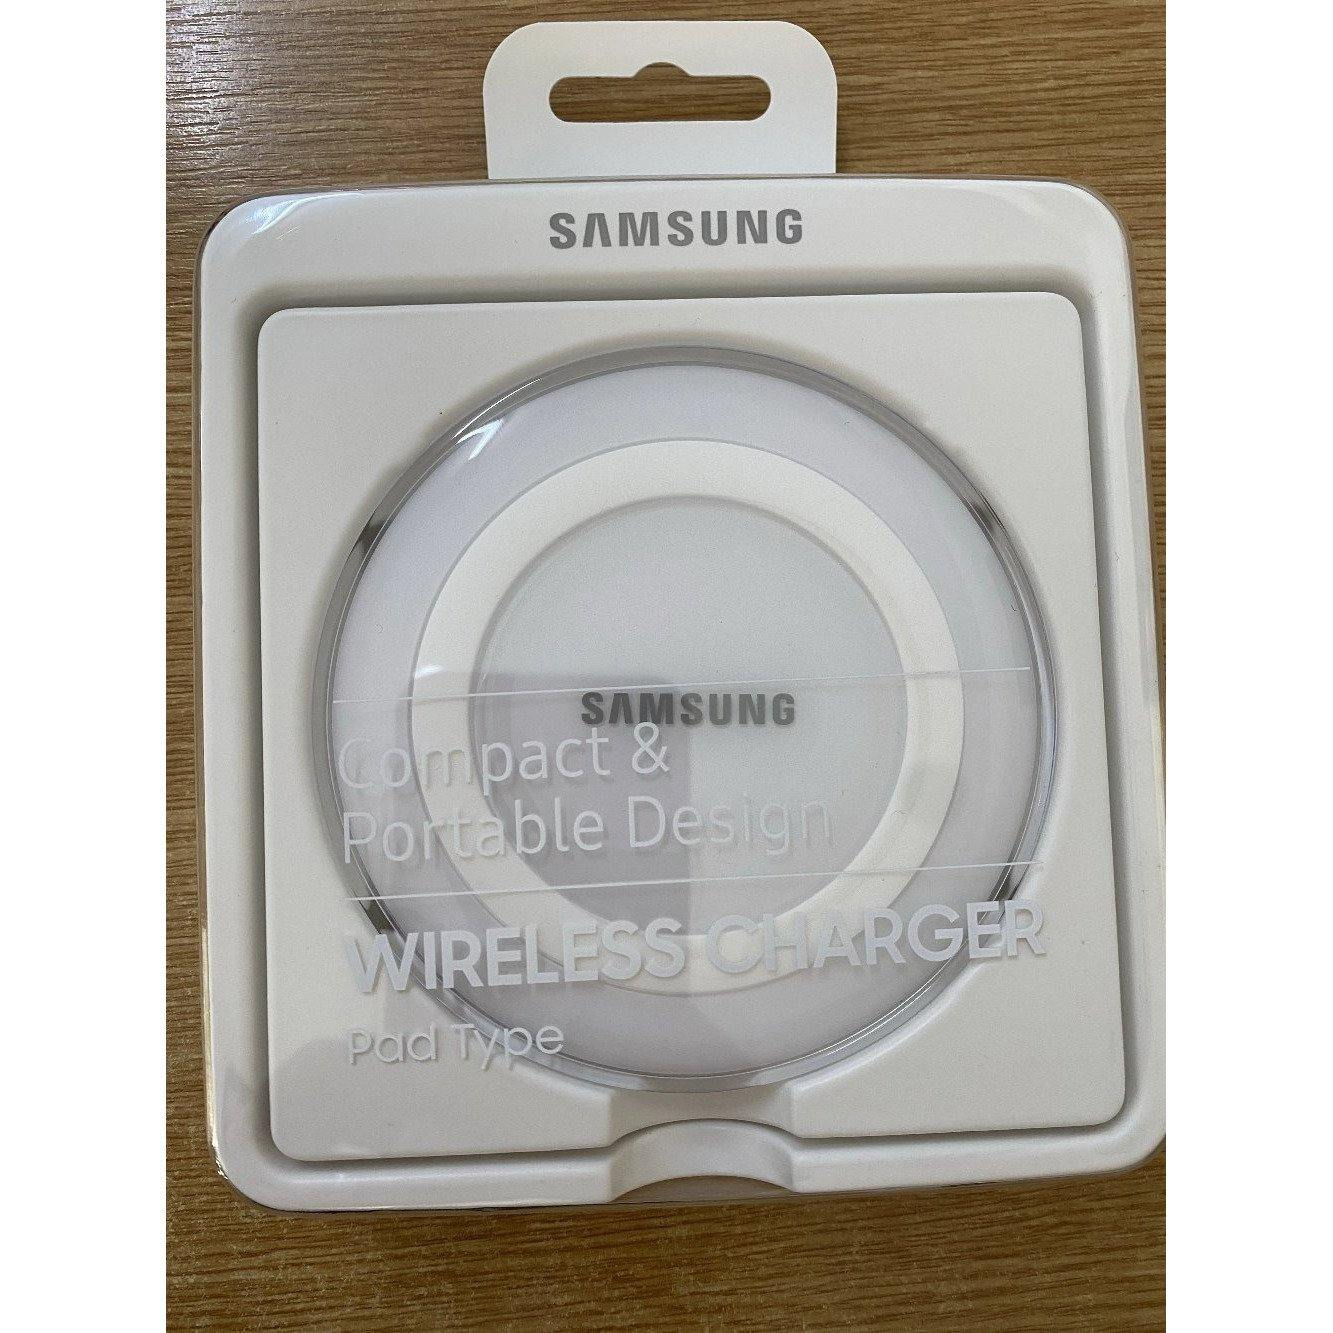 Genuine Samsung Wireless Charger - Time 2 Talk Swansea